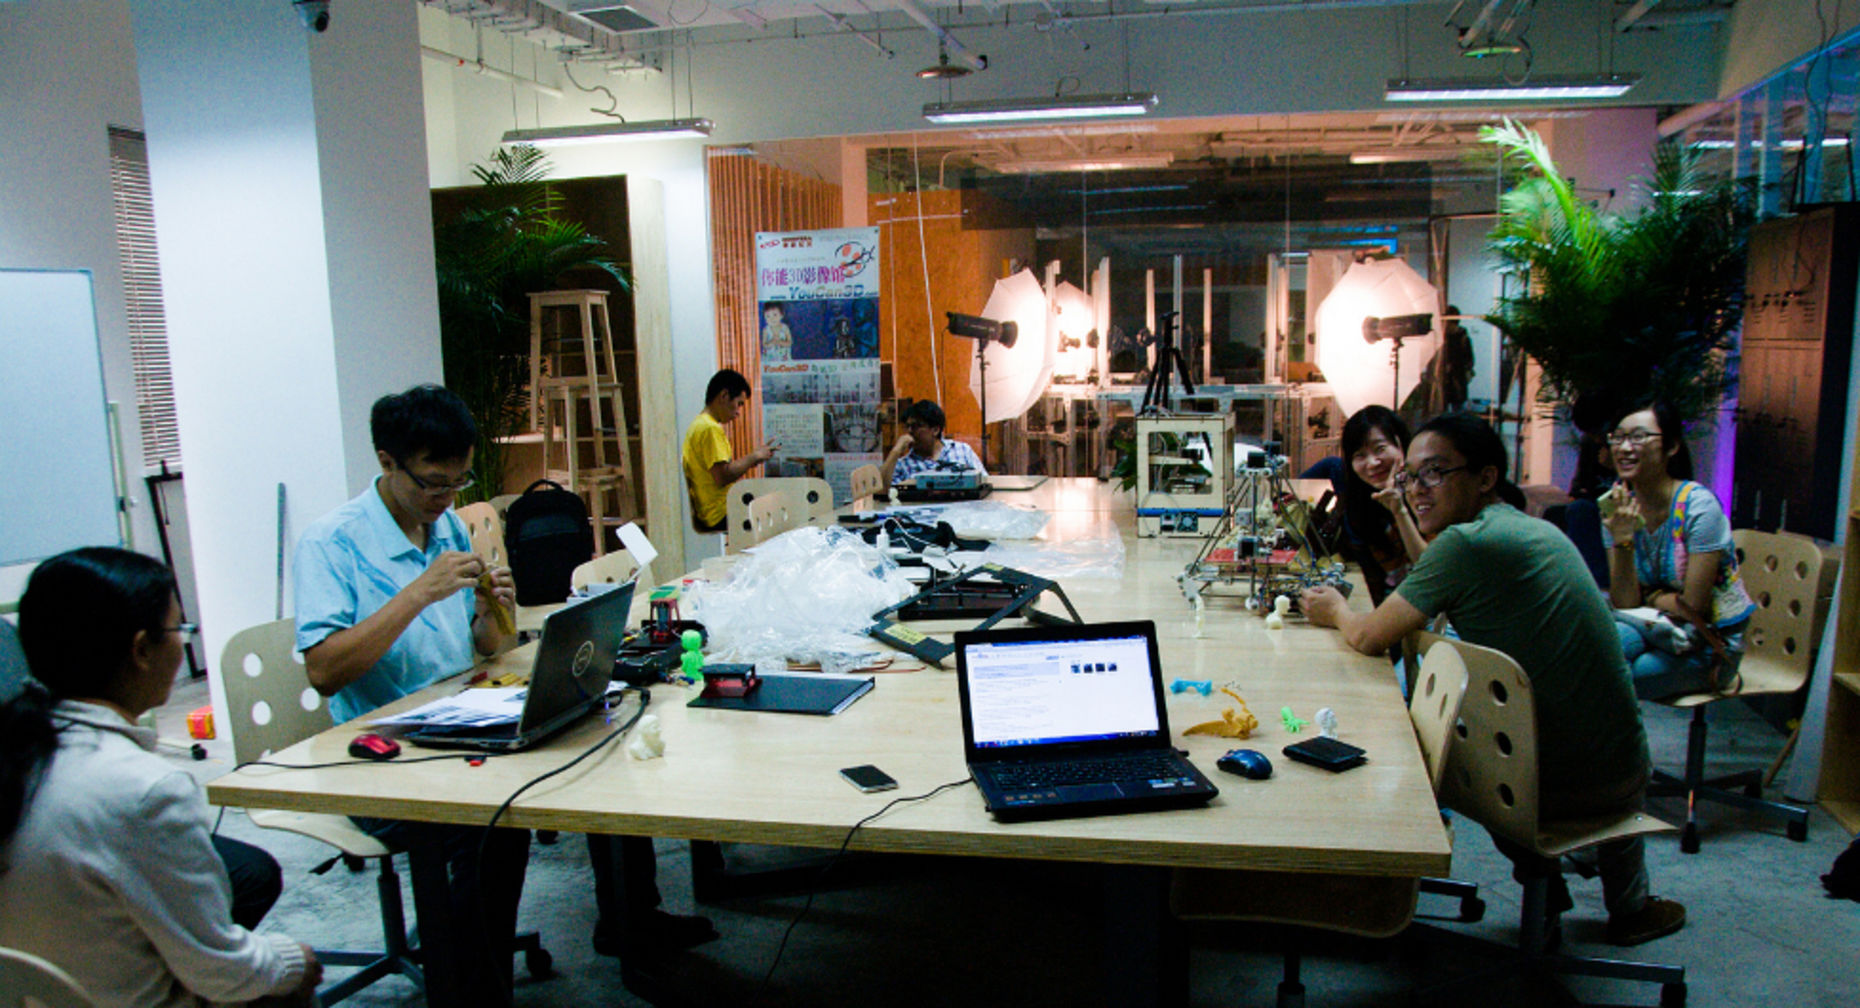 Attendees at technology workspace Makerspace in Beijing. Source: Mitch Altman